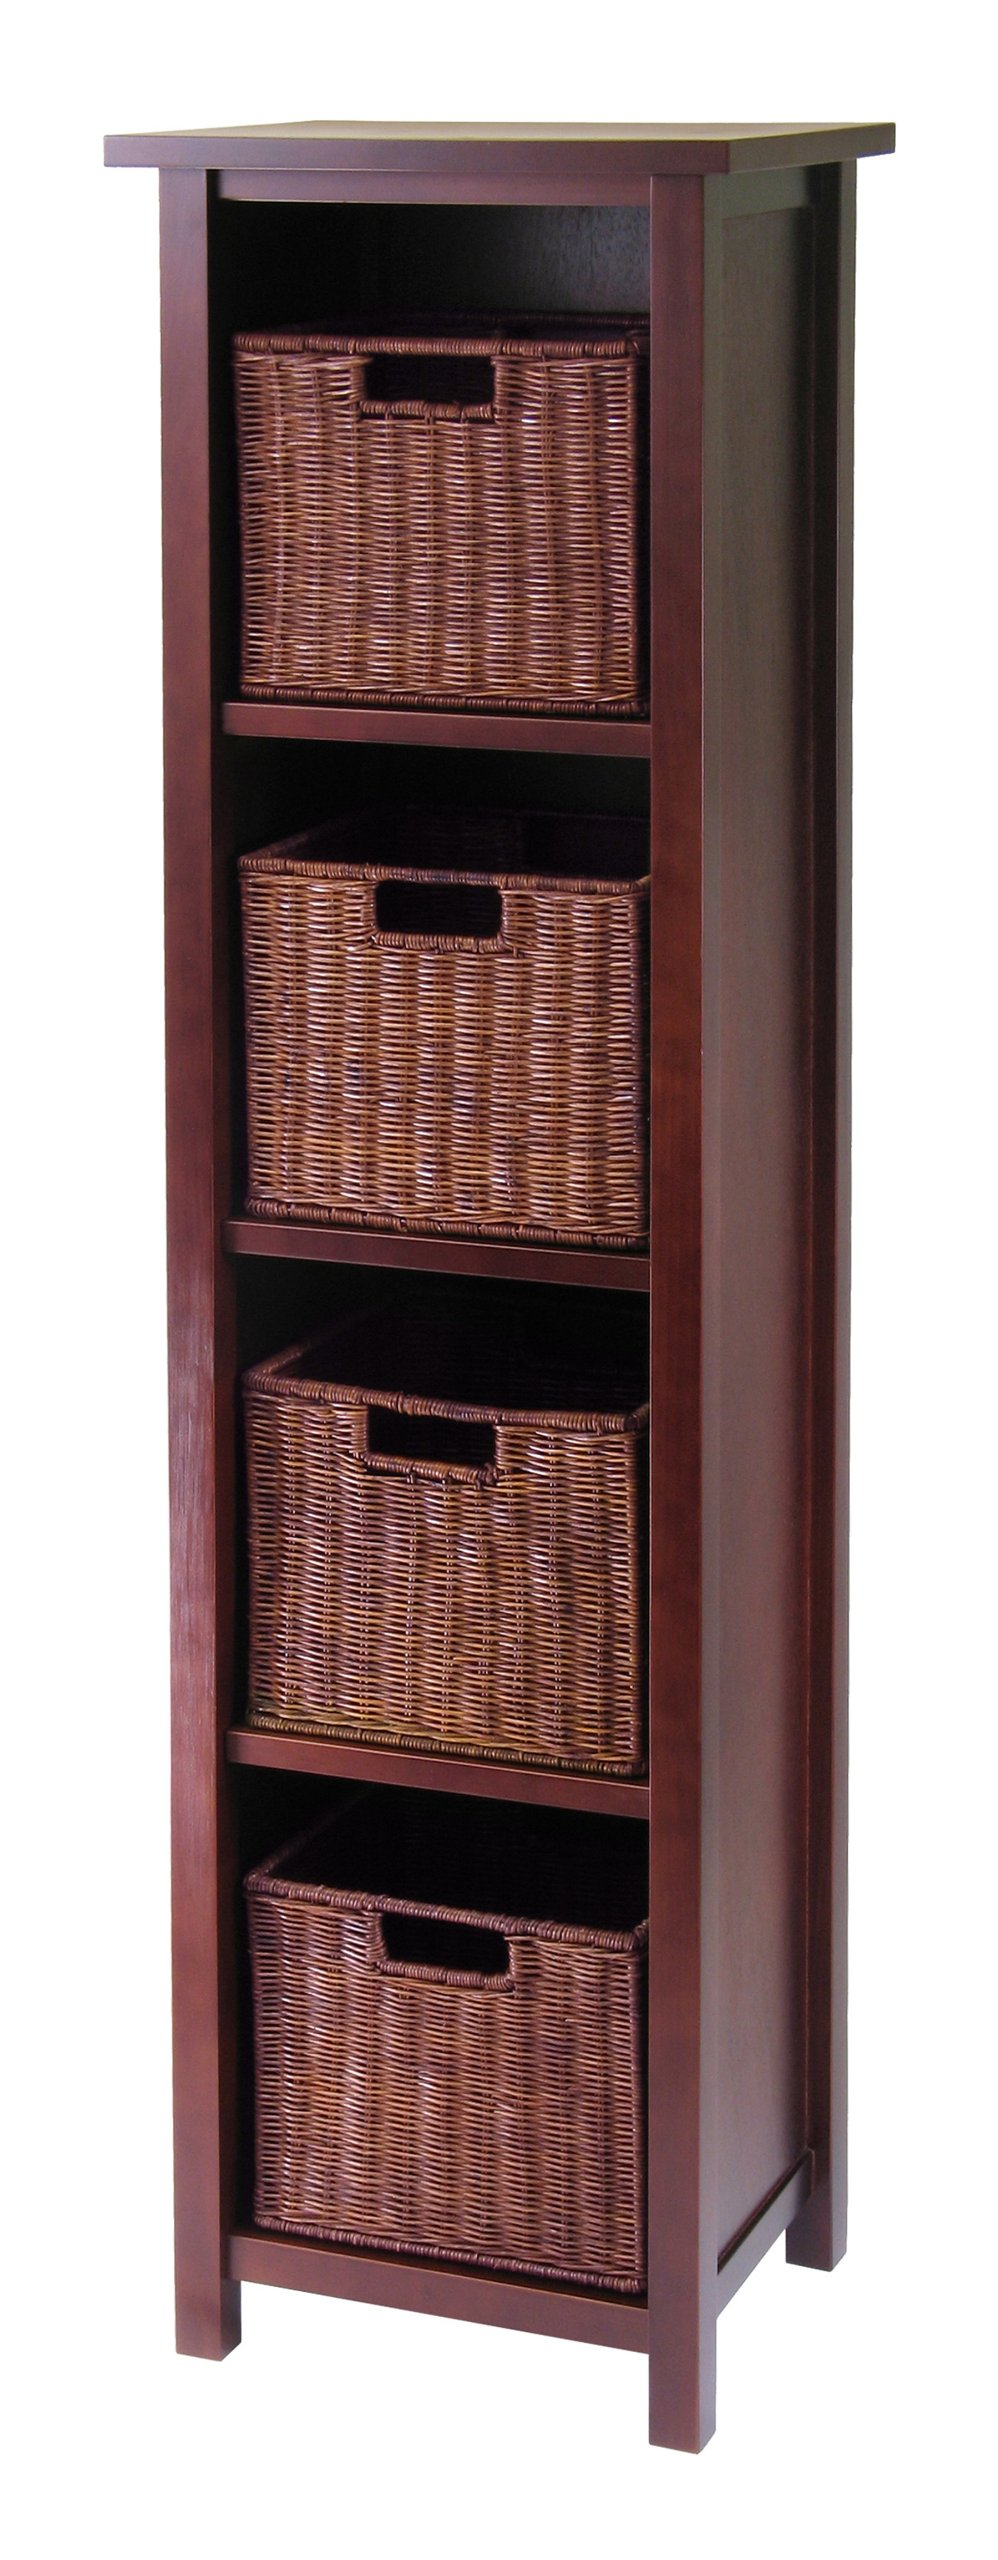 Winsome Wood Milan Wood 5 Tier Open Cabinet in Antique Walnut Finish and 4 Rattan Baskets in Antique Walnut Finish by Winsome Wood